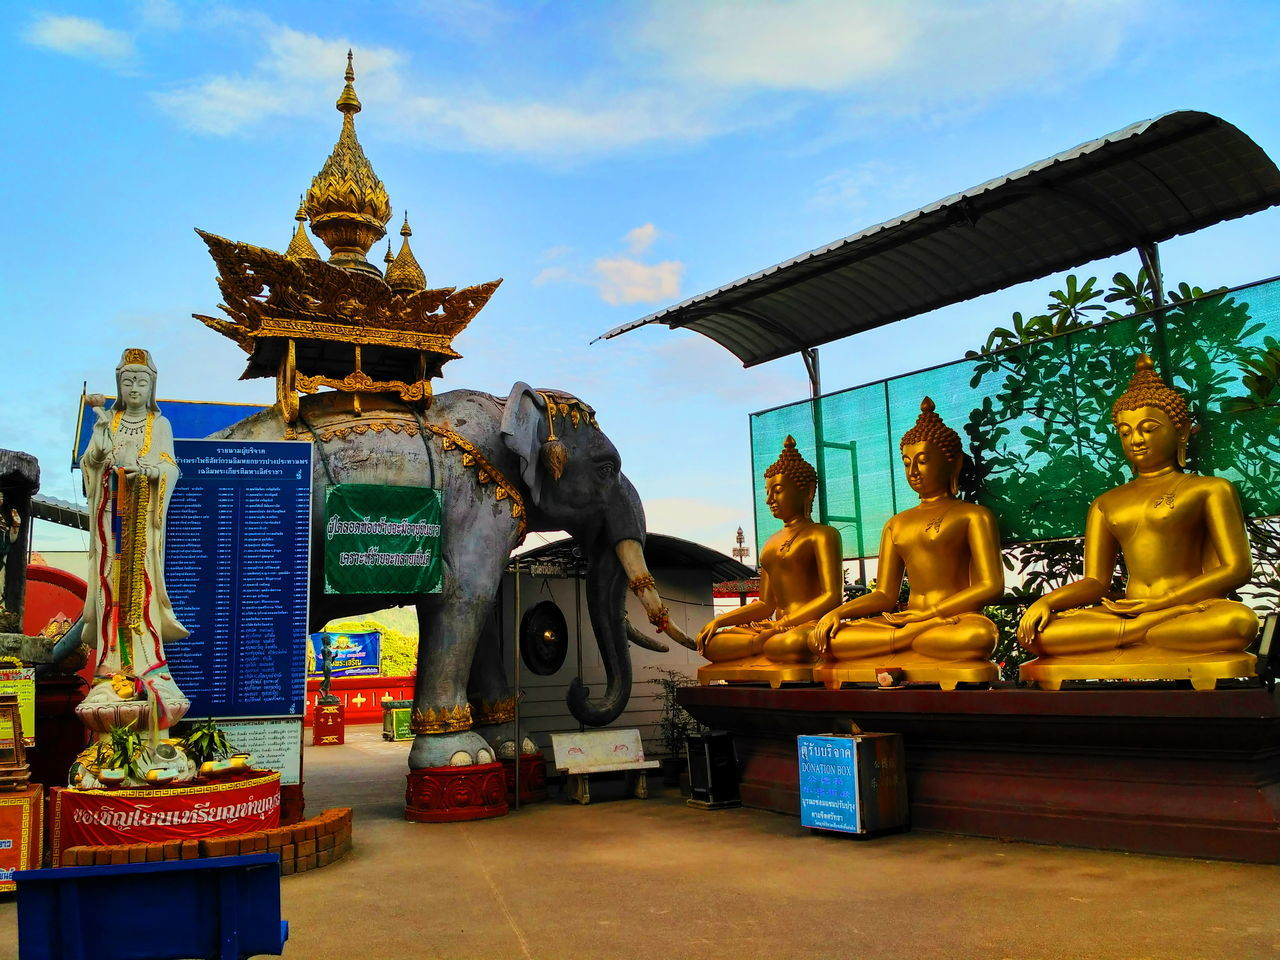 Budha Elephant Statue Dewi GoldenTriangle Trip Thailand Laos Myanmar Travel Destinations Outdoors Day Stupa History Statue Chiangrai